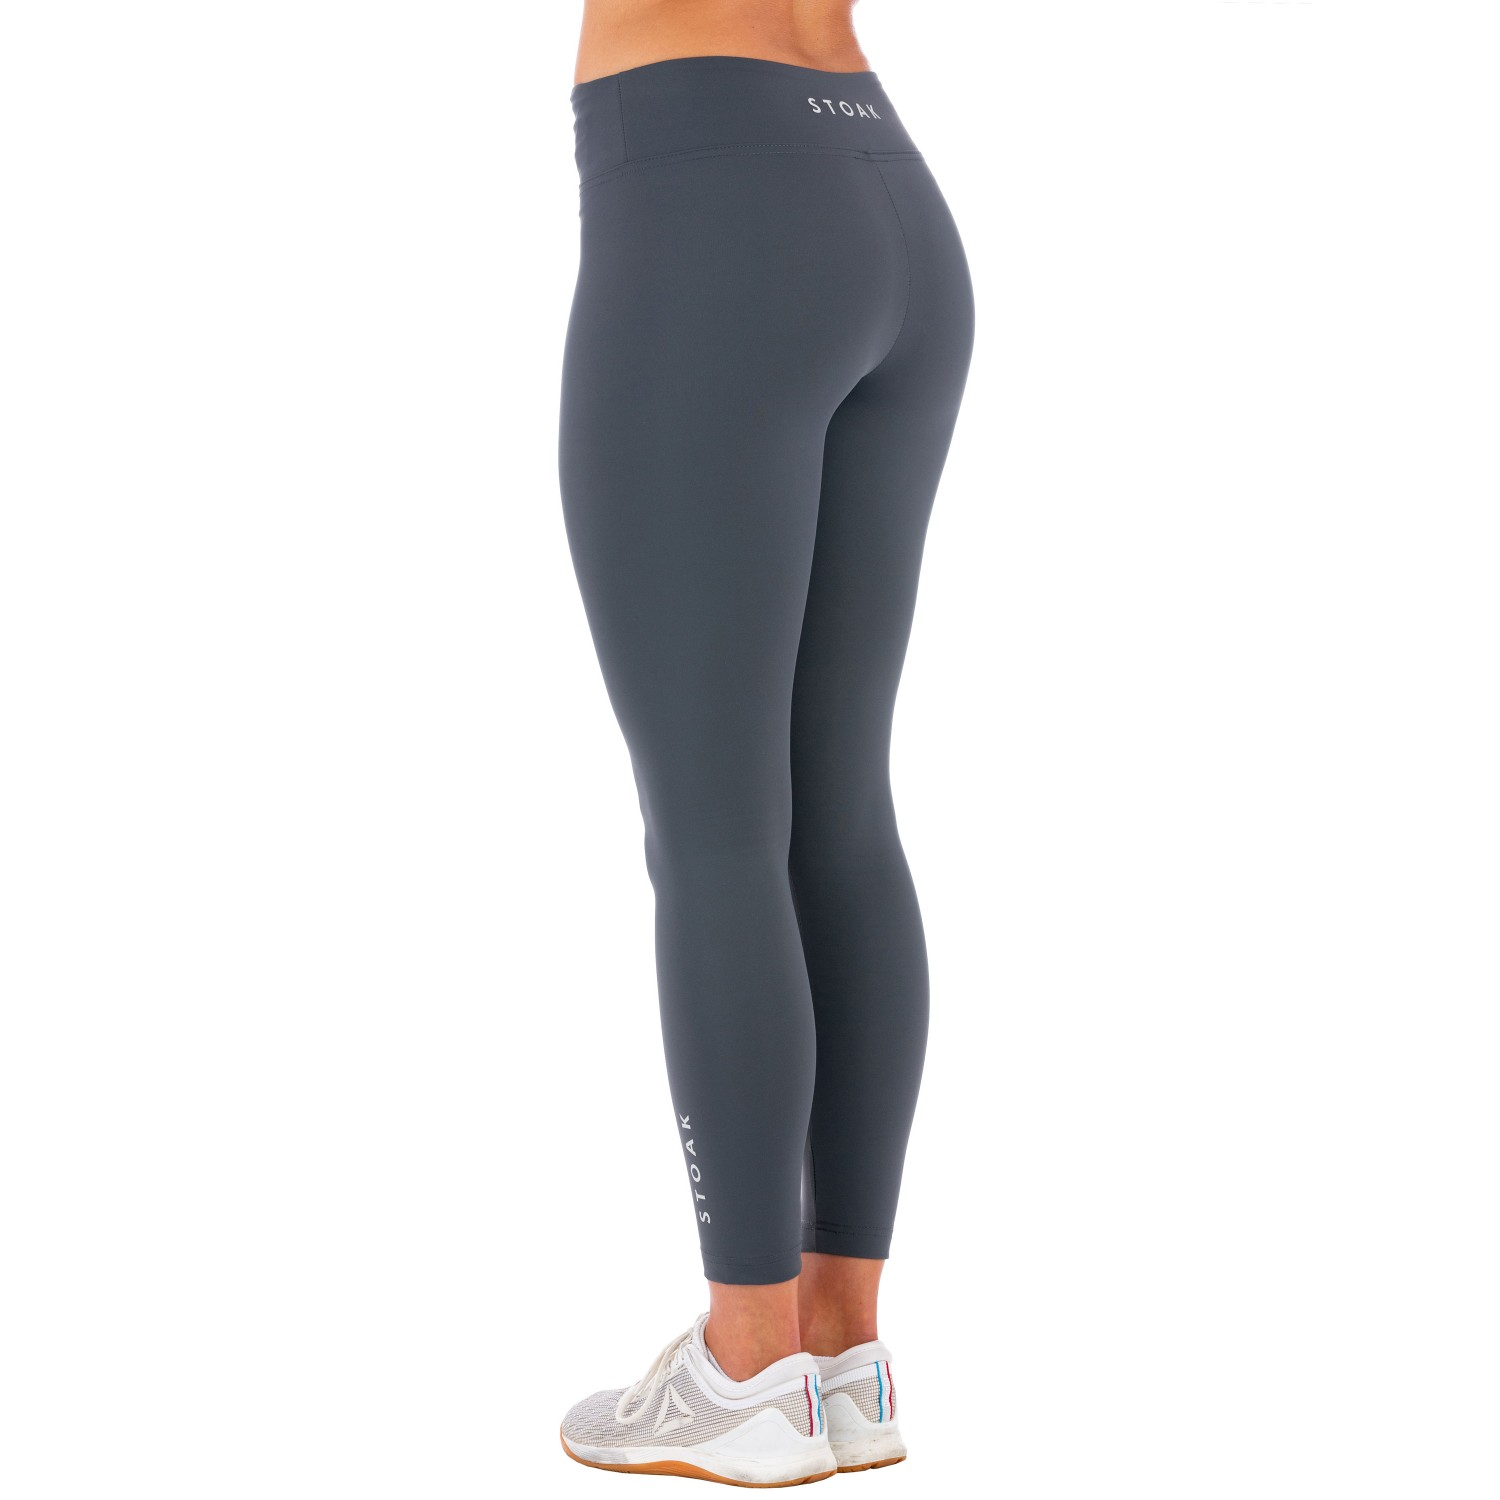 STOAK STONE Performance Leggings